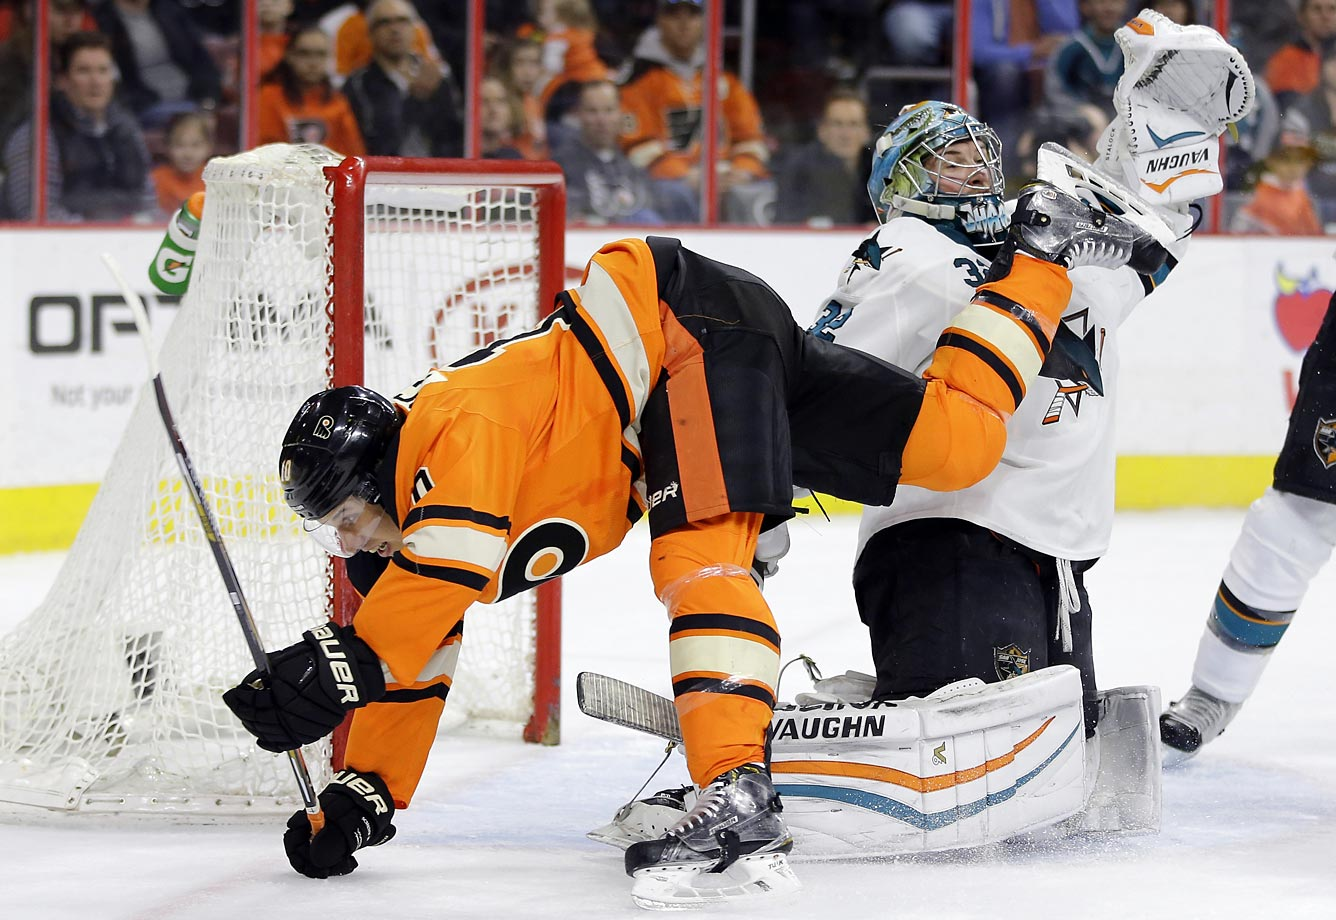 Brayden Schenn of the Flyers collides with Alex Stalock of the Sharks.